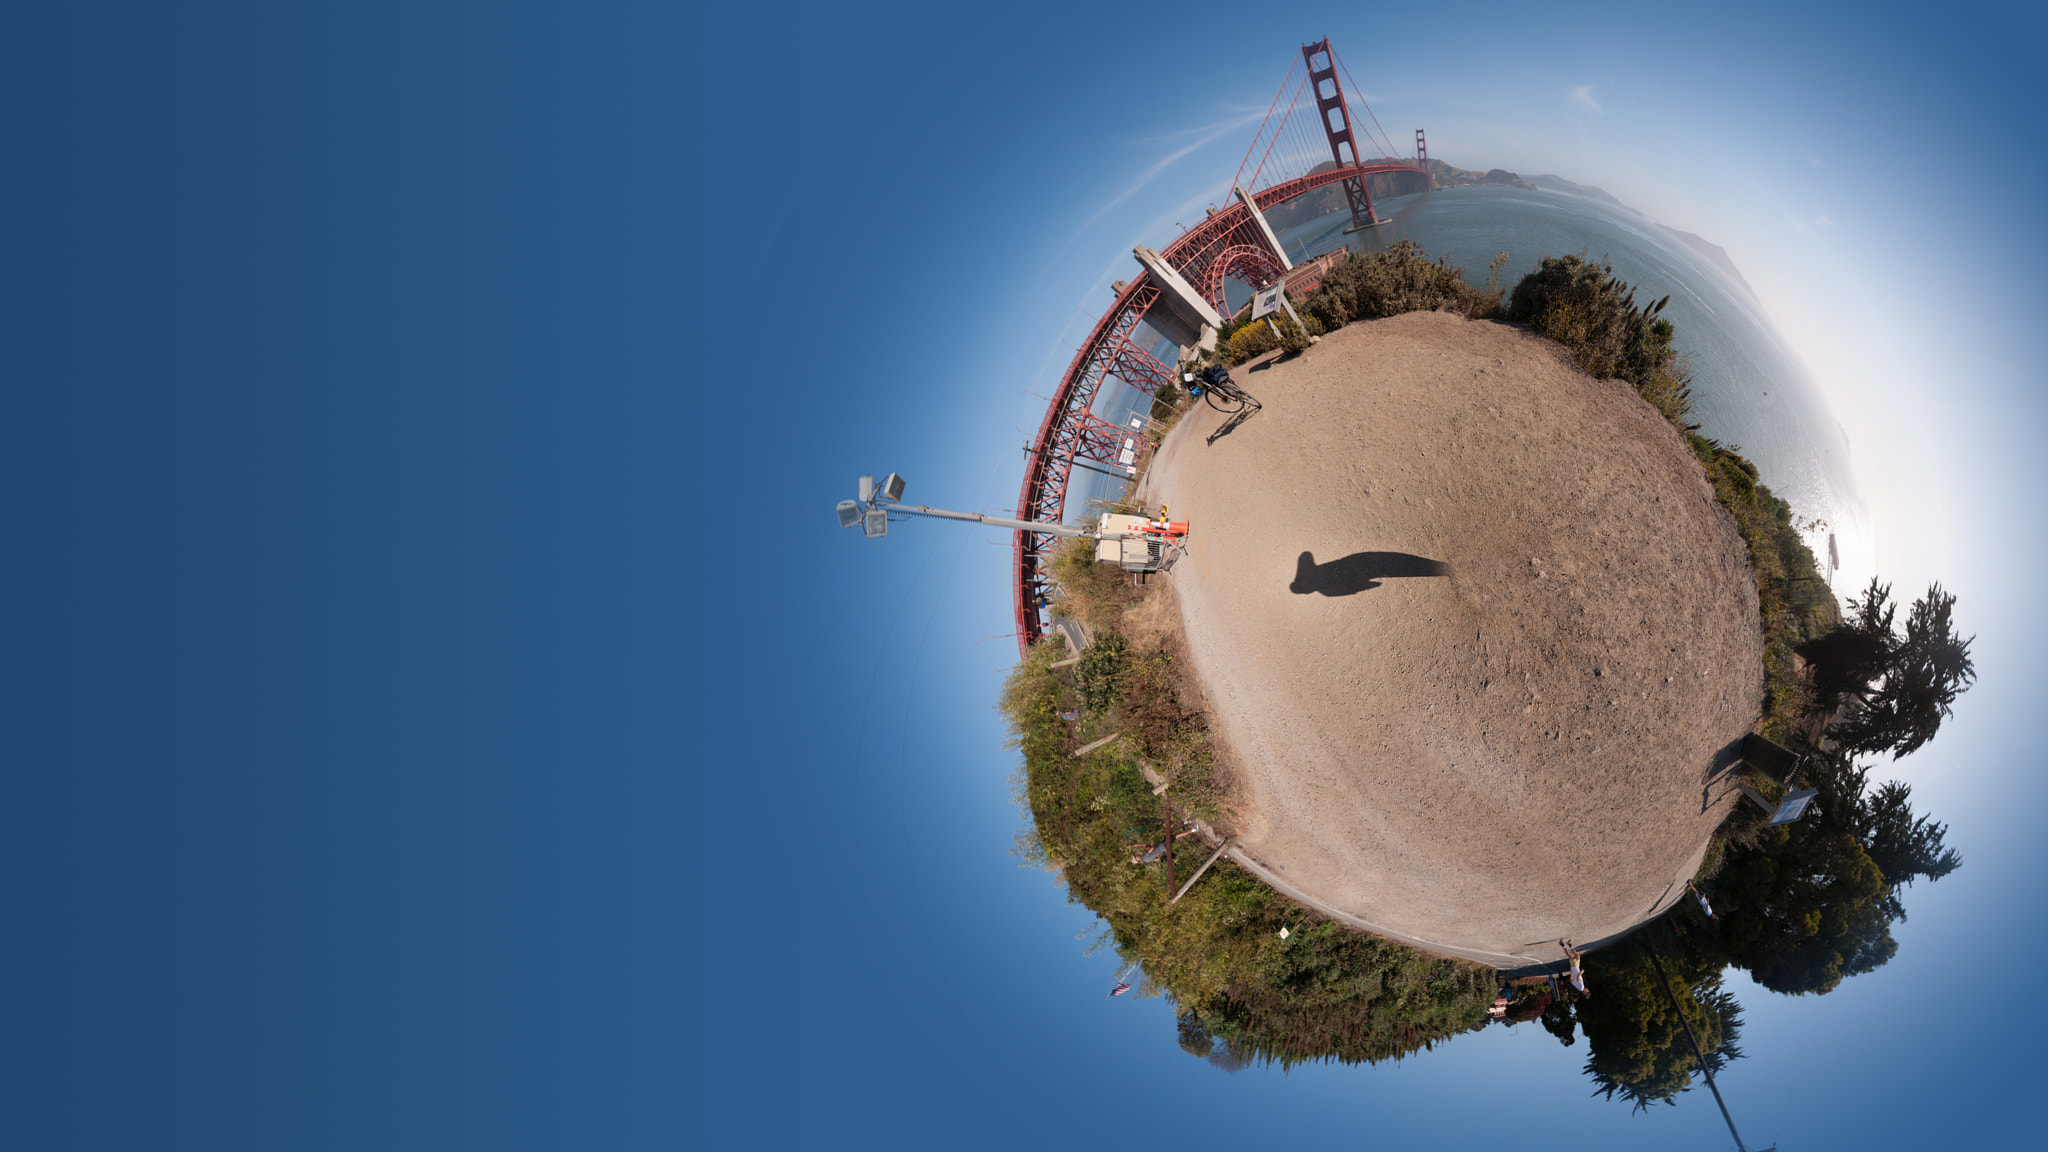 Photograph The Golden Gate Bridge from Fort Point: A 360 degree panorama by Rahi Varsani on 500px